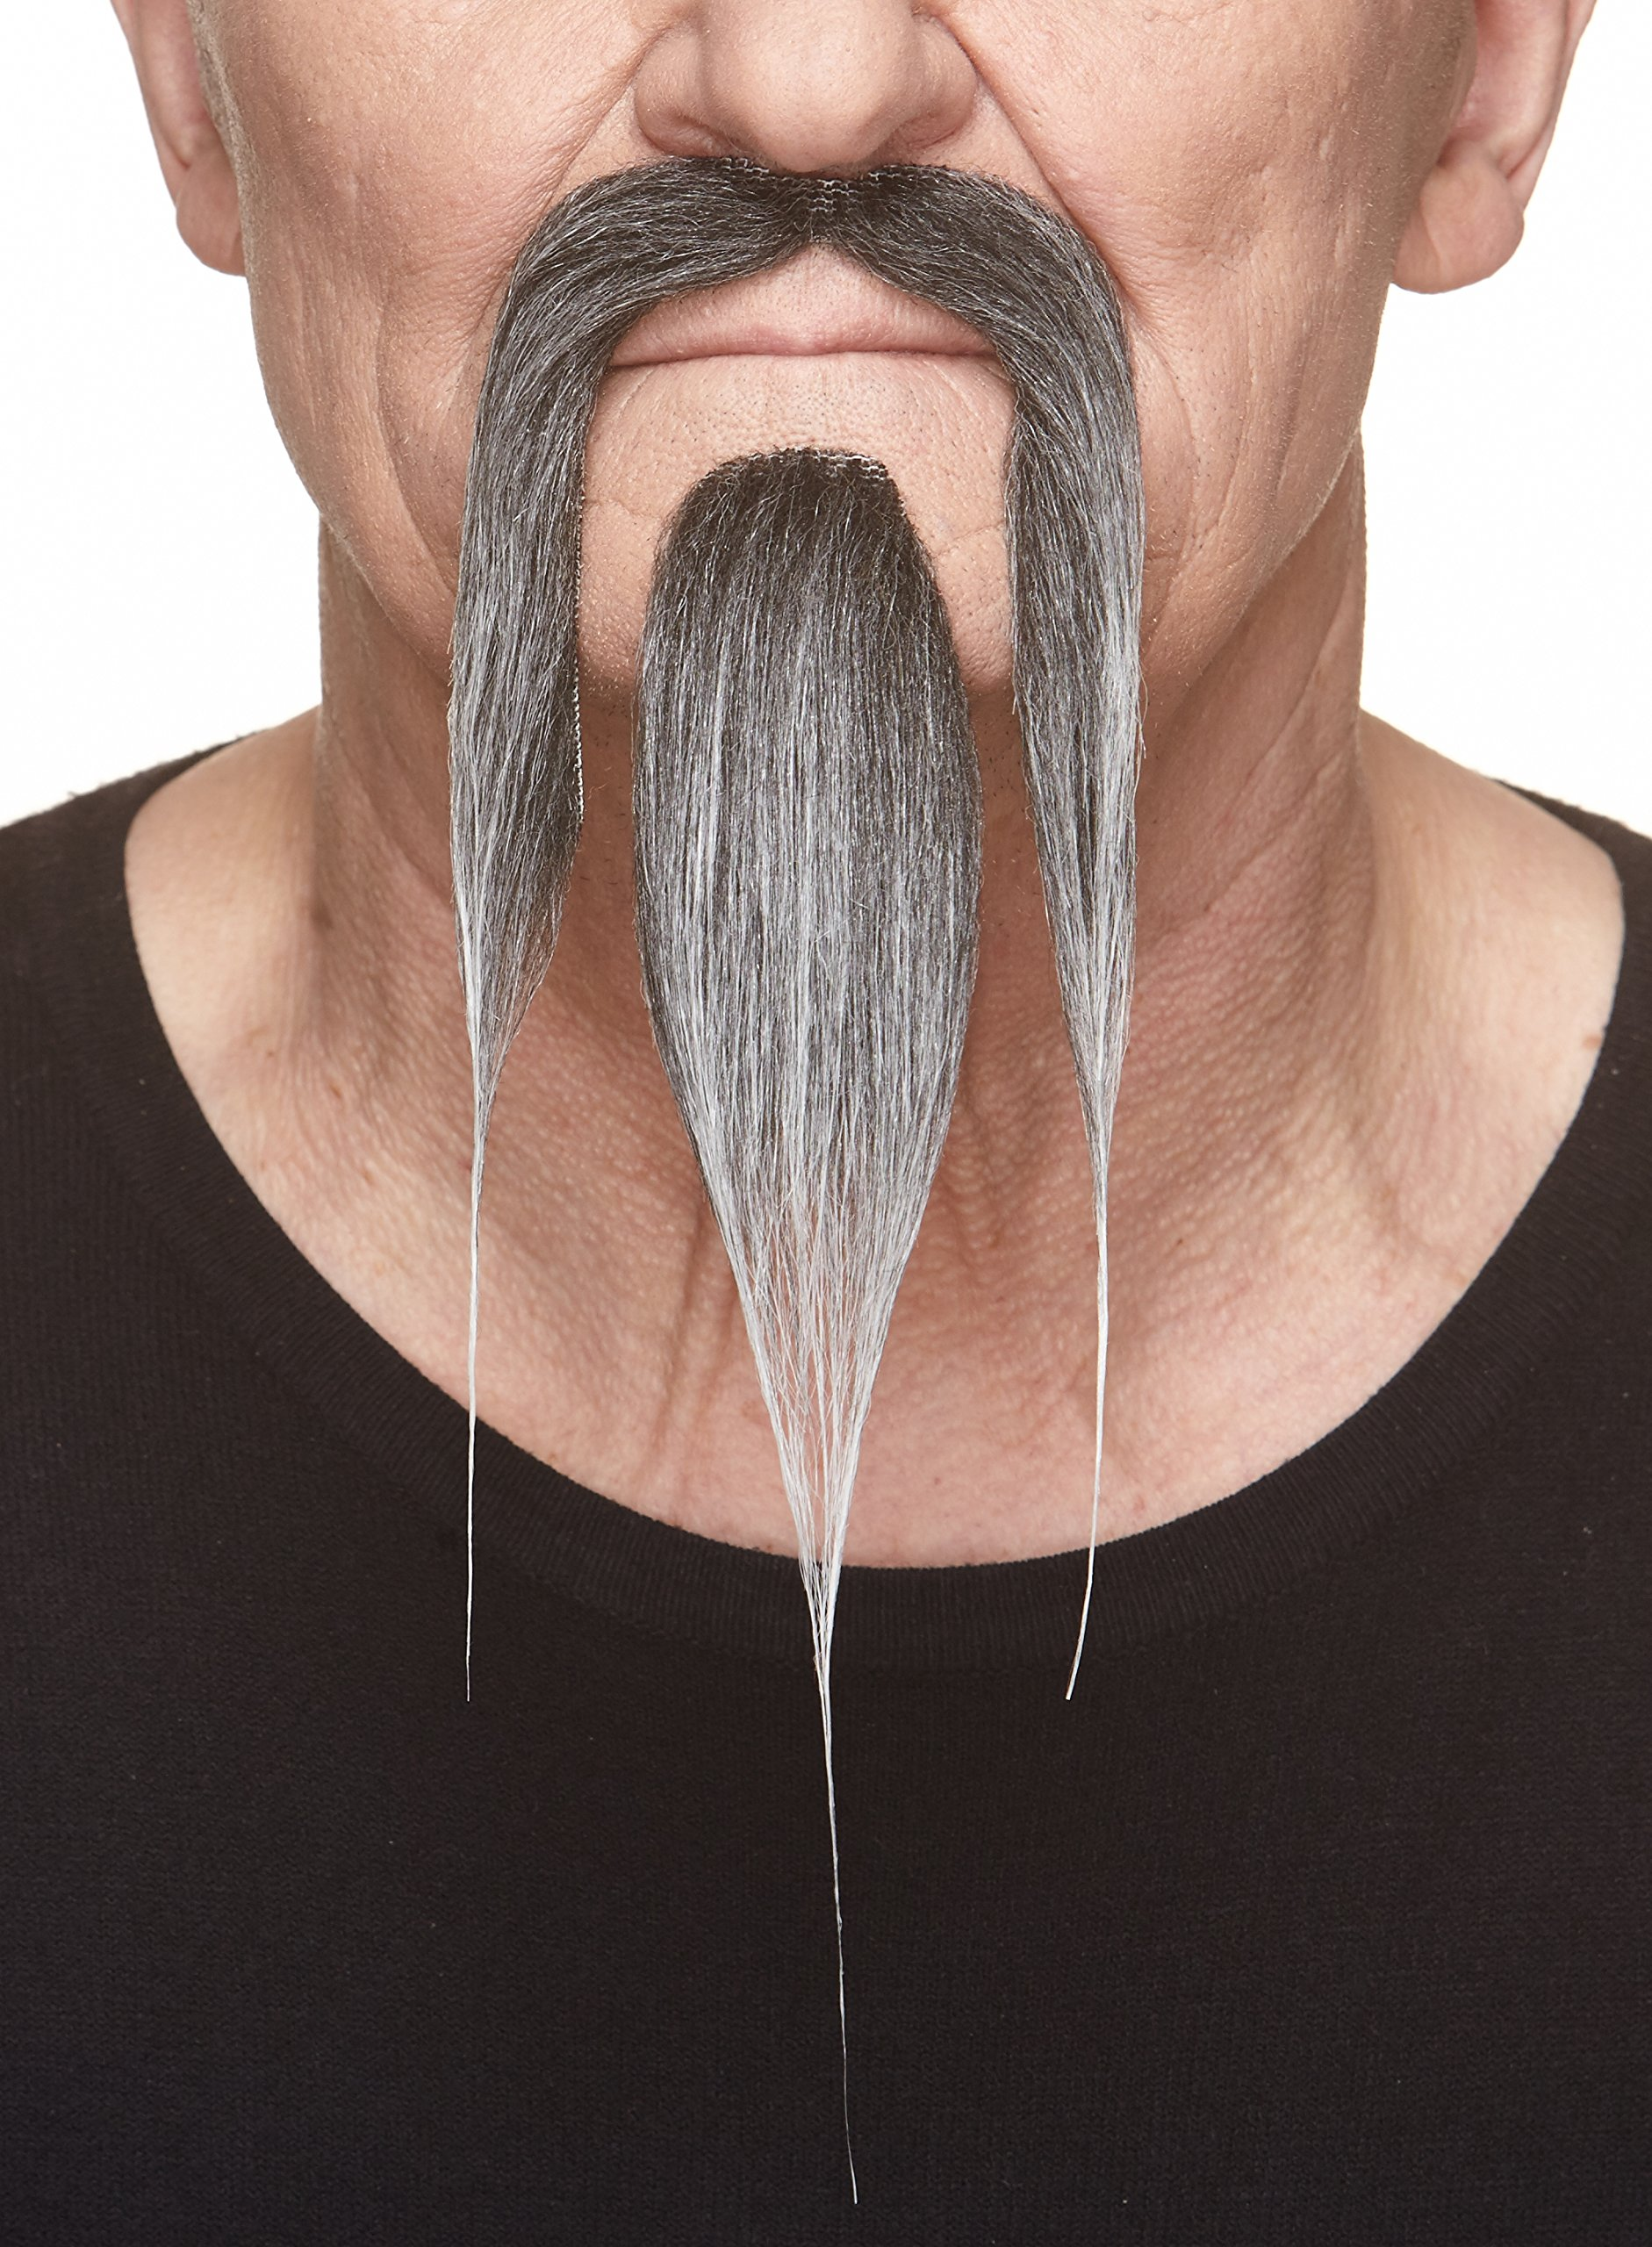 Mustaches Self Adhesive, Novelty, Fake Shaolin Beard and, Salt and Pepper Color